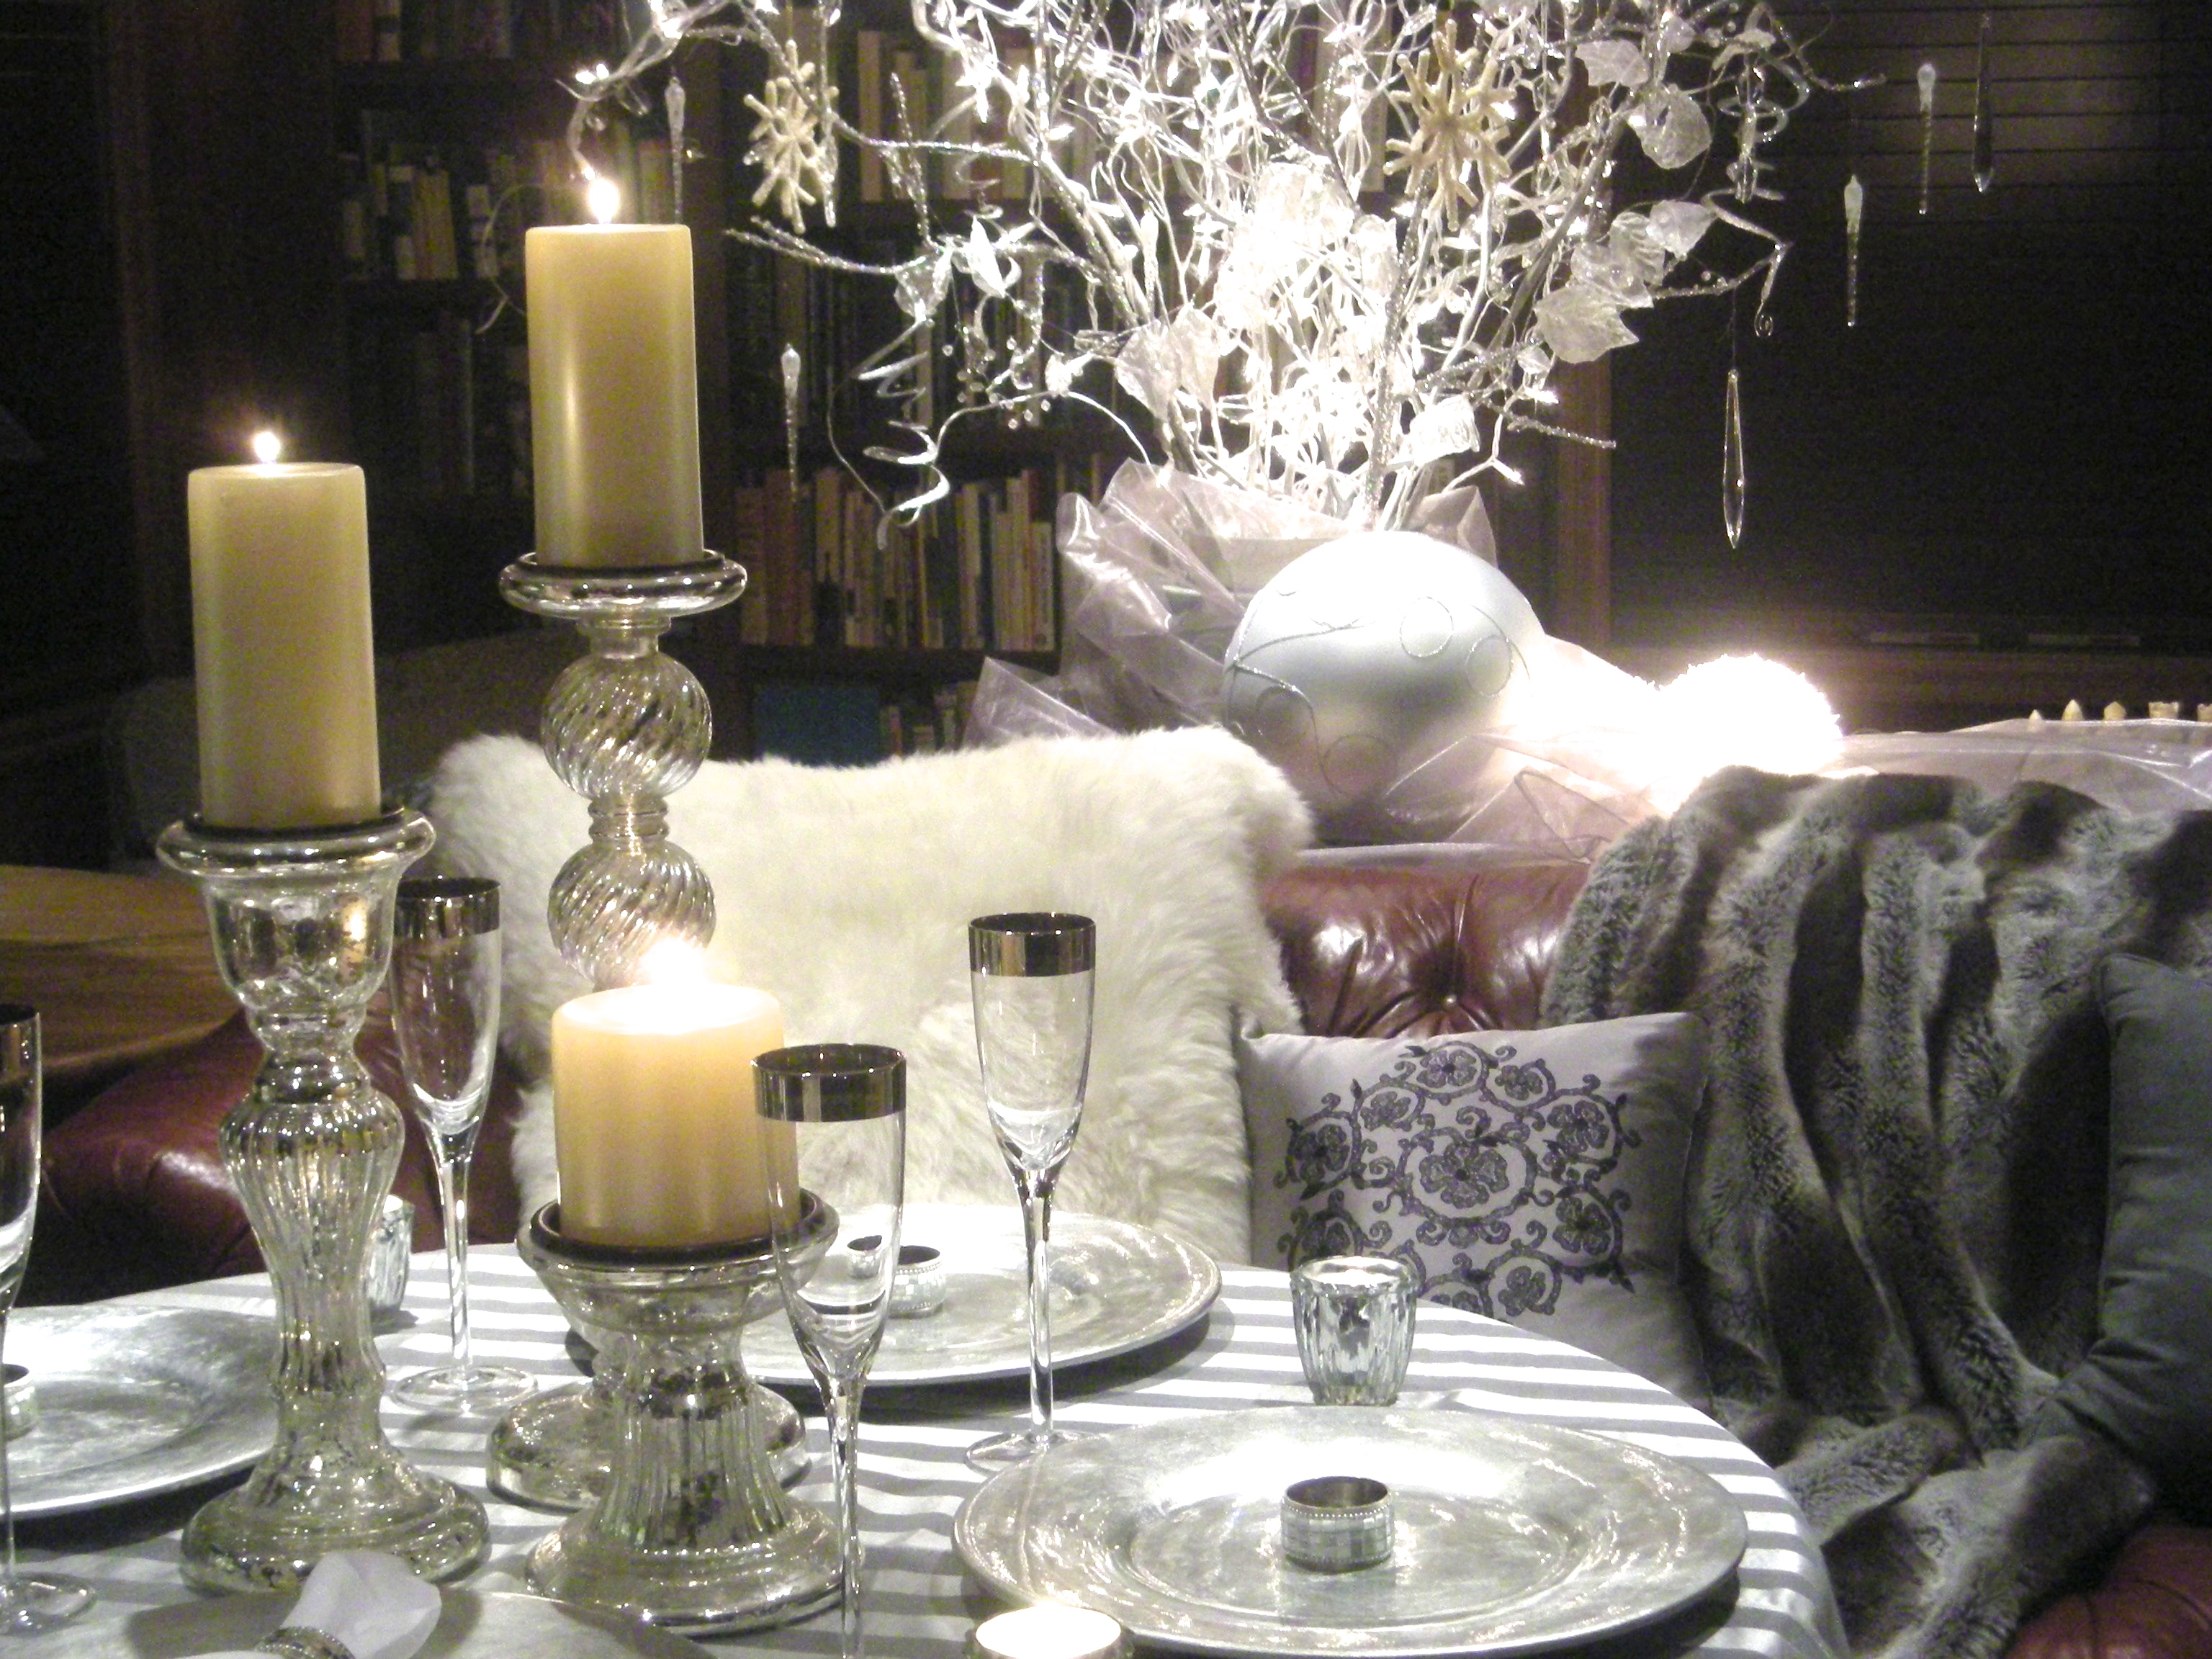 Filed in accessories art furnishings interior decorating interior design library lighting remodeling tabletop textiles upholstery